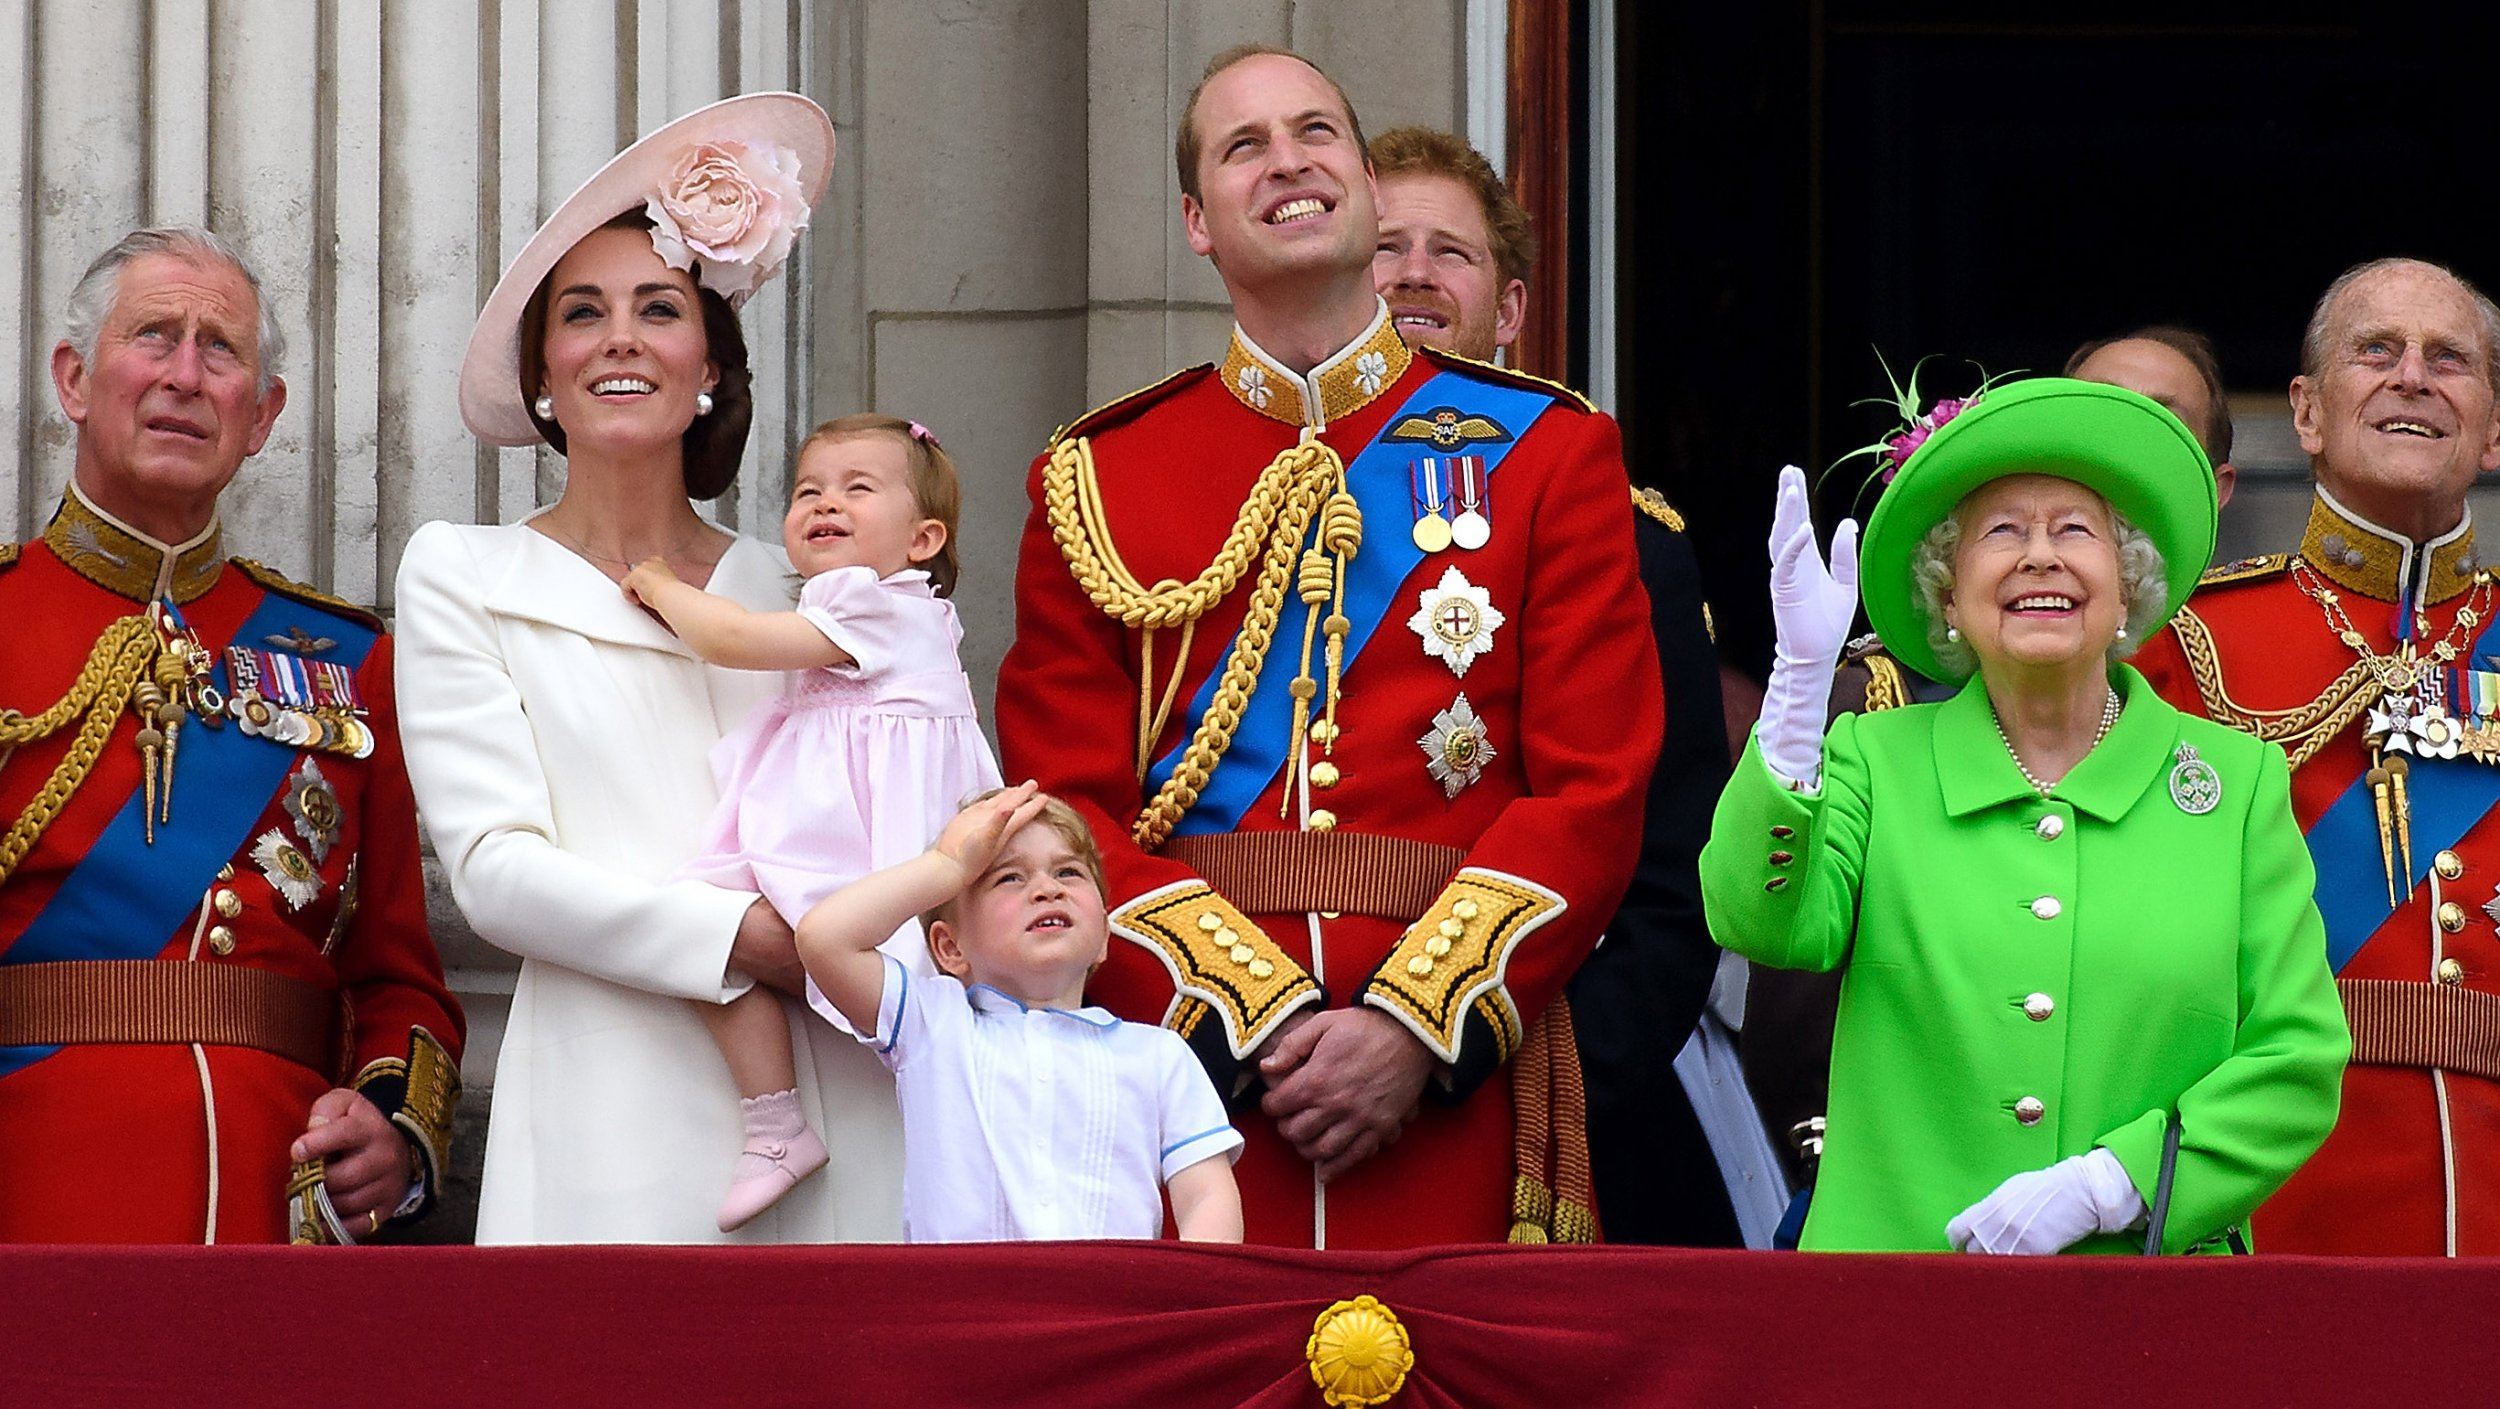 prince charles, william, Kate middleton